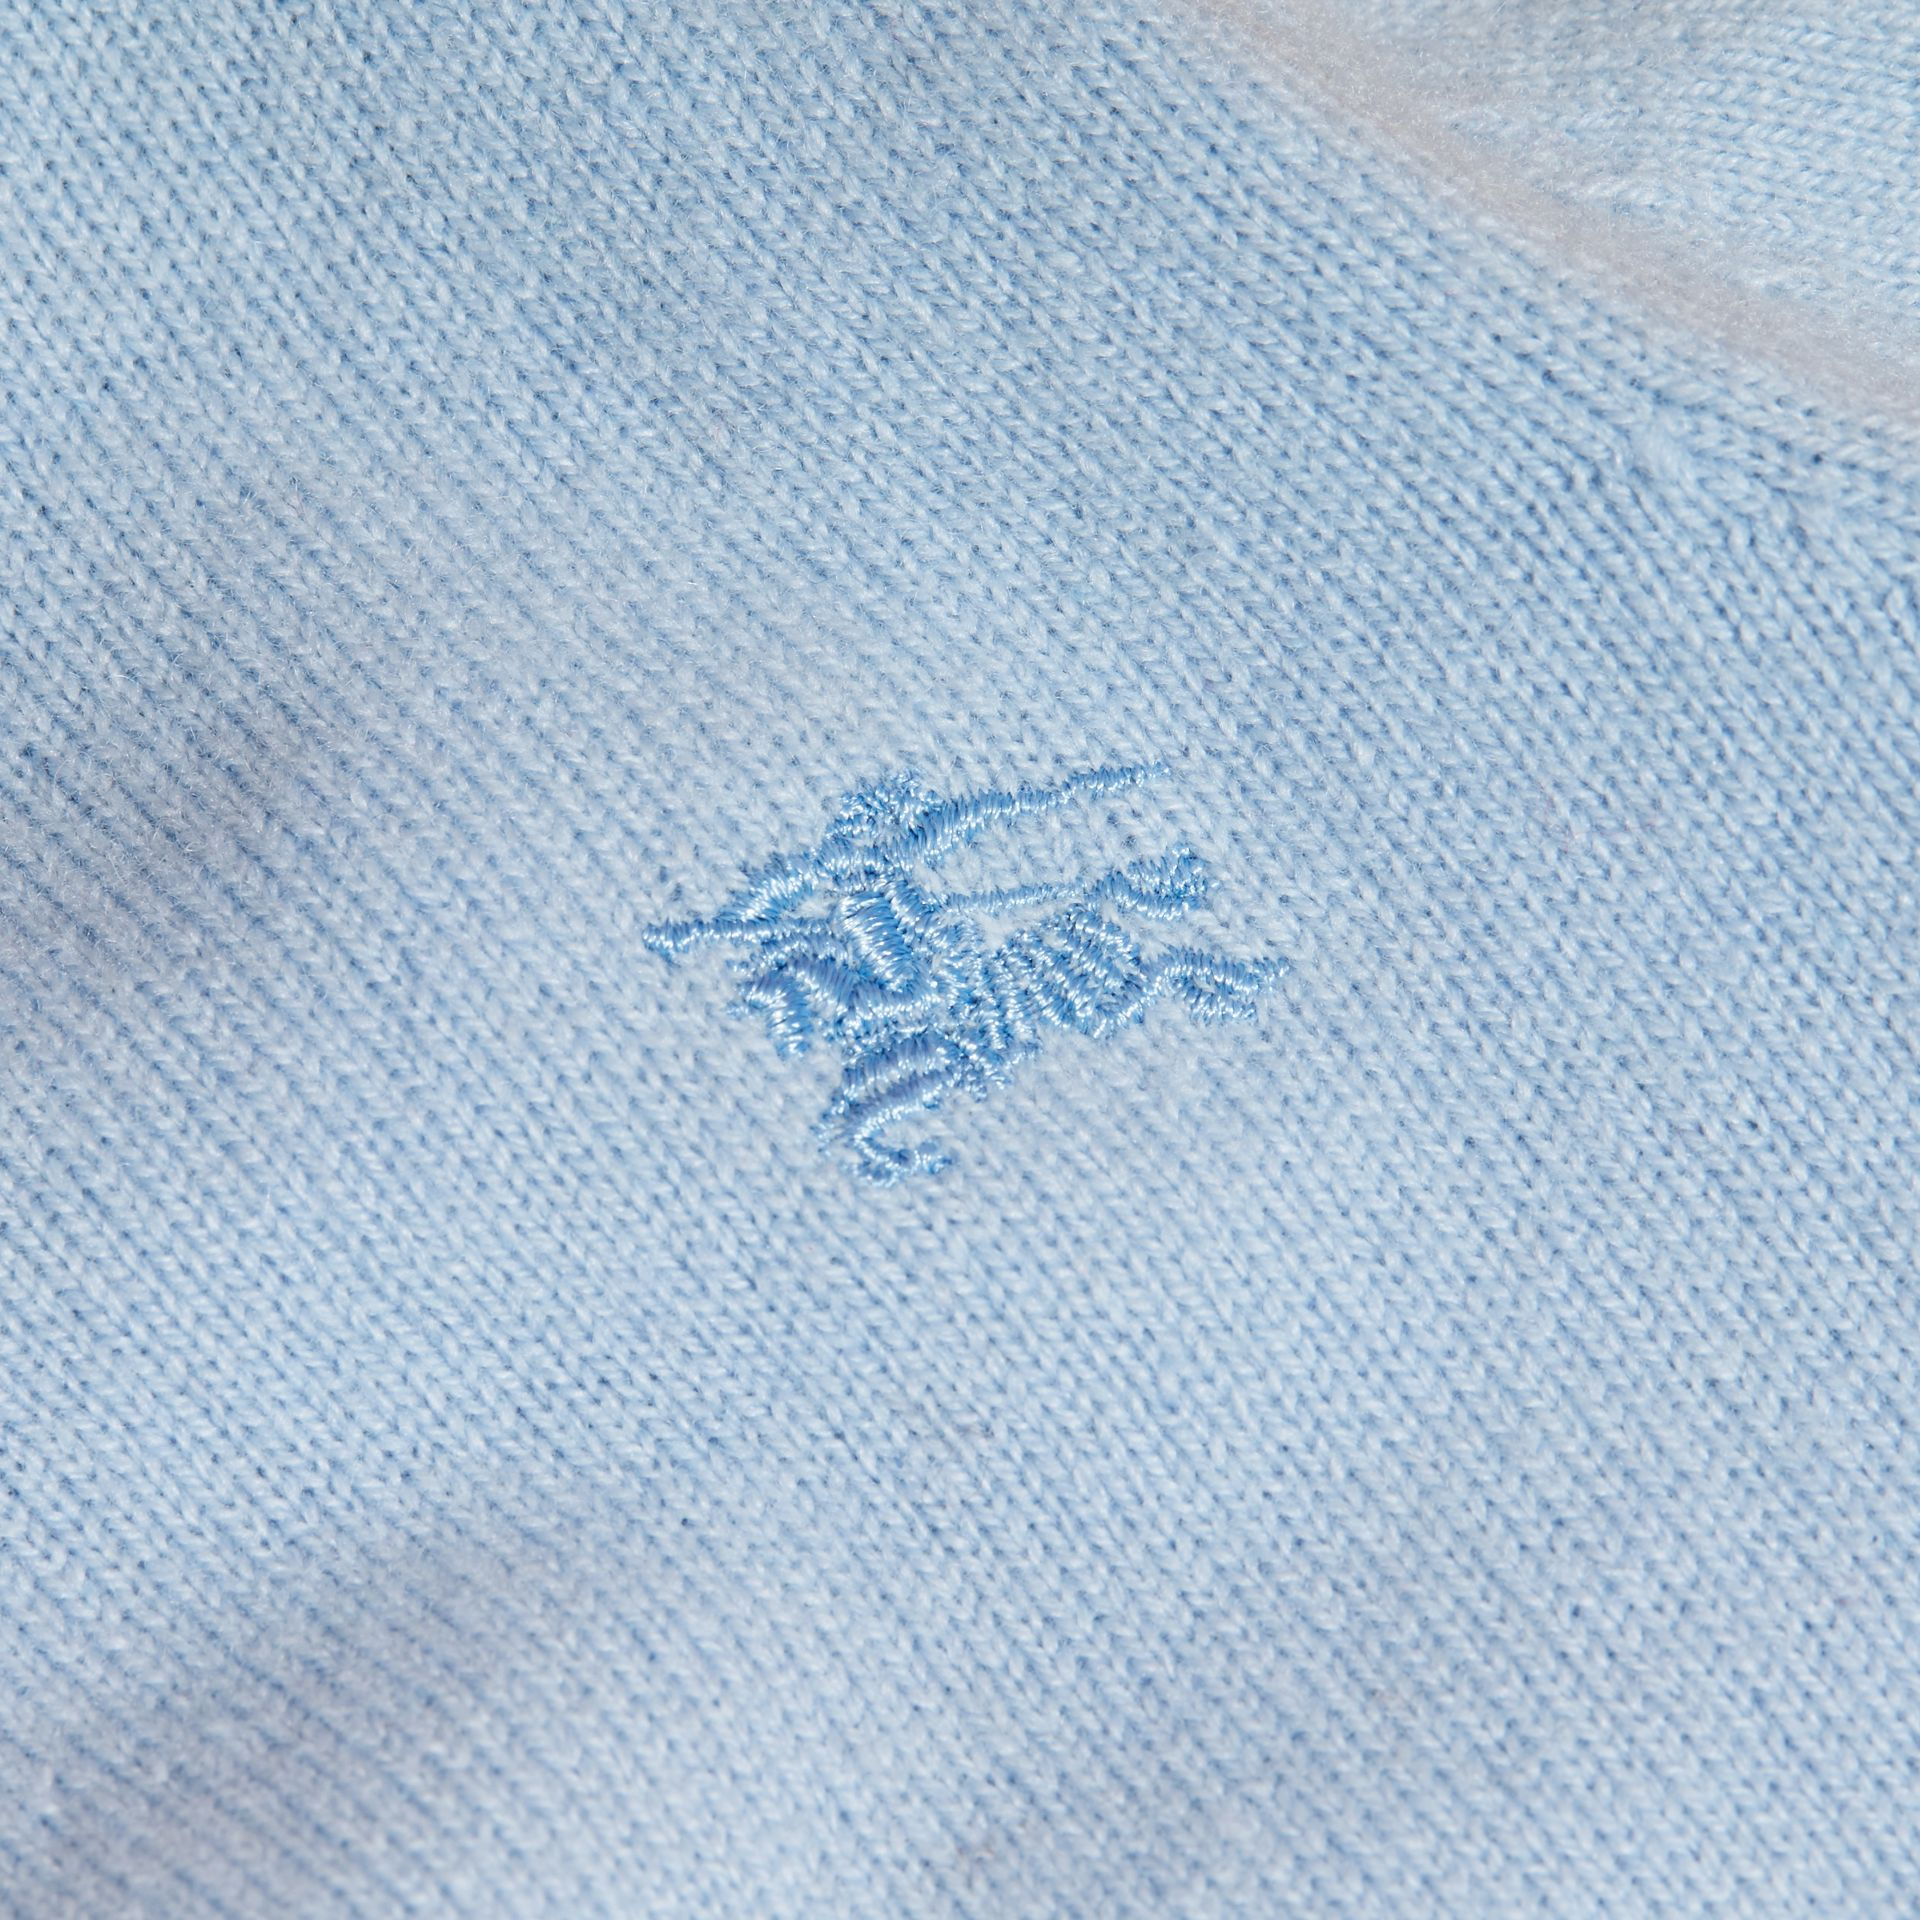 Pale cornflower blue Check Detail Cashmere Sweater Pale Cornflower Blue - gallery image 2